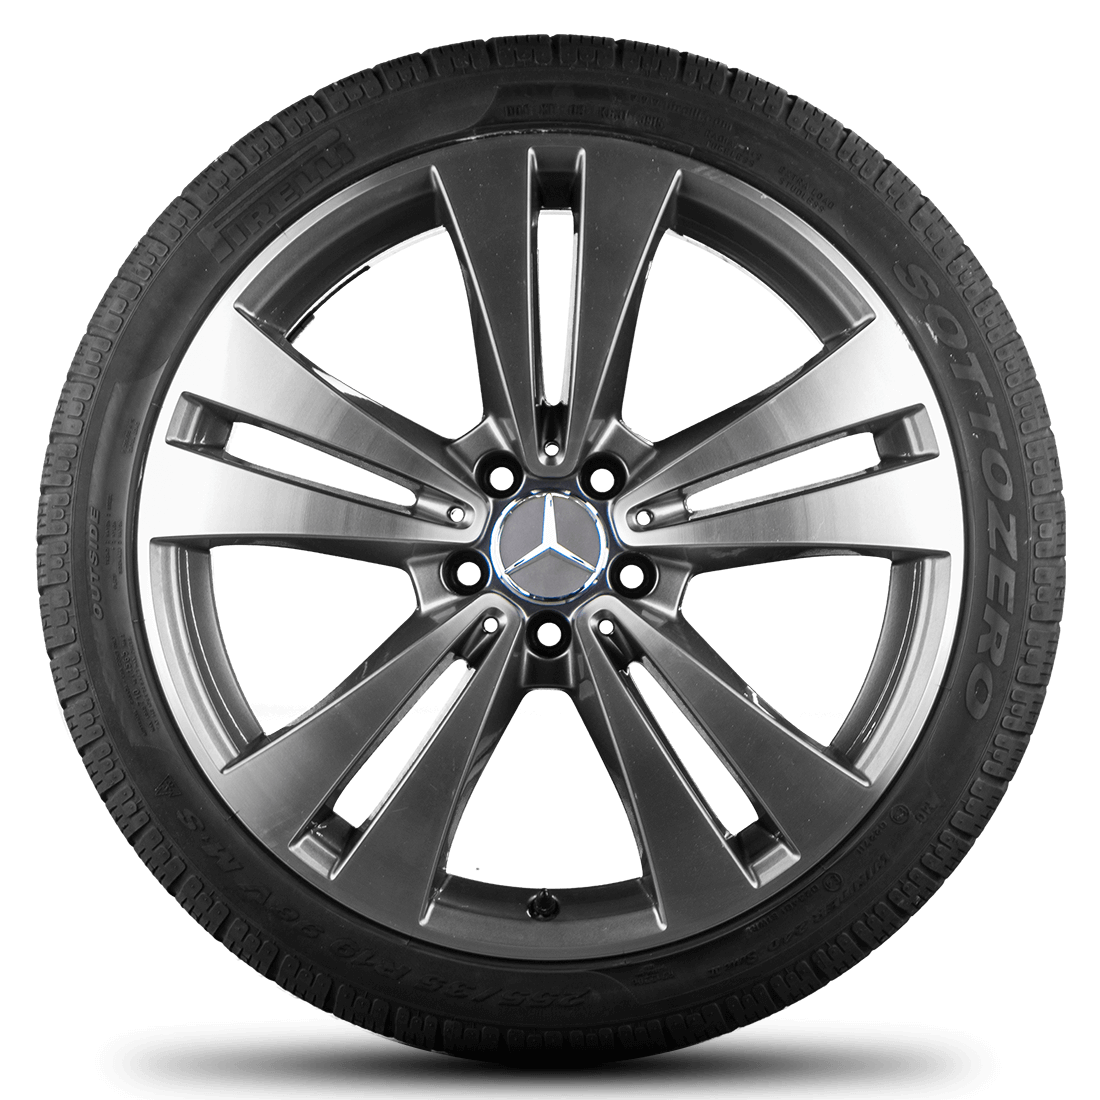 Mercedes benz 19 inch rims cls c218 x218 alloy wheels tyres for Mercedes benz tyres